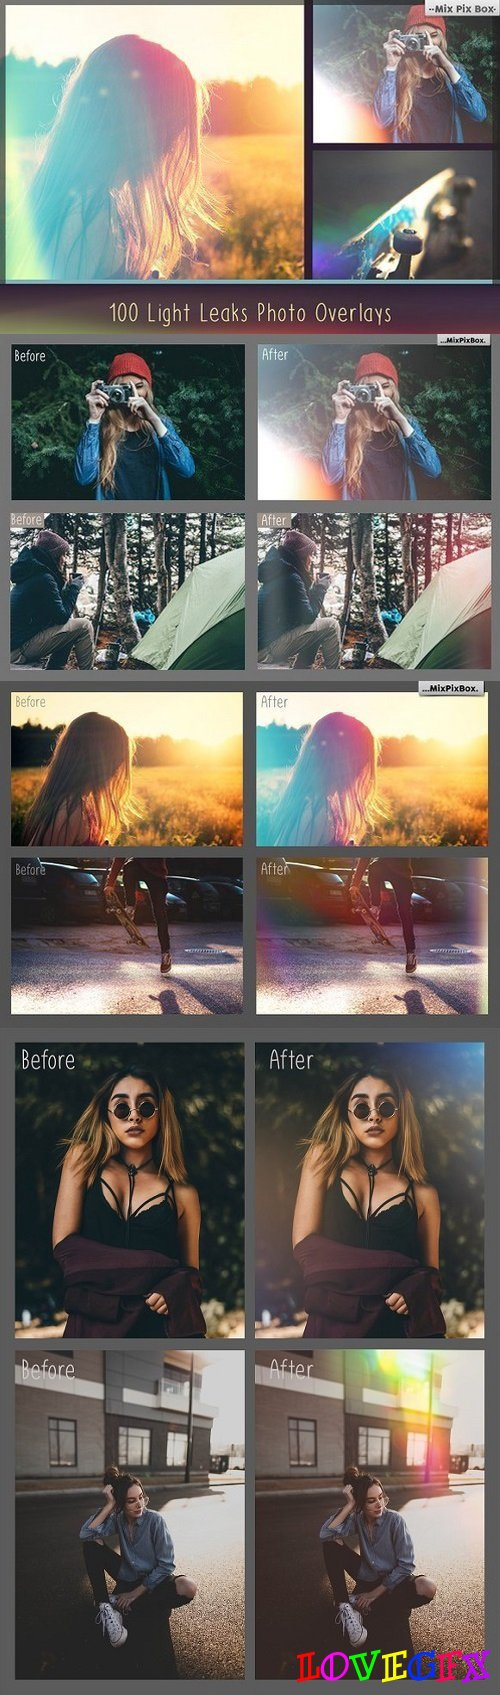 100 Light Leaks Overlays 836751